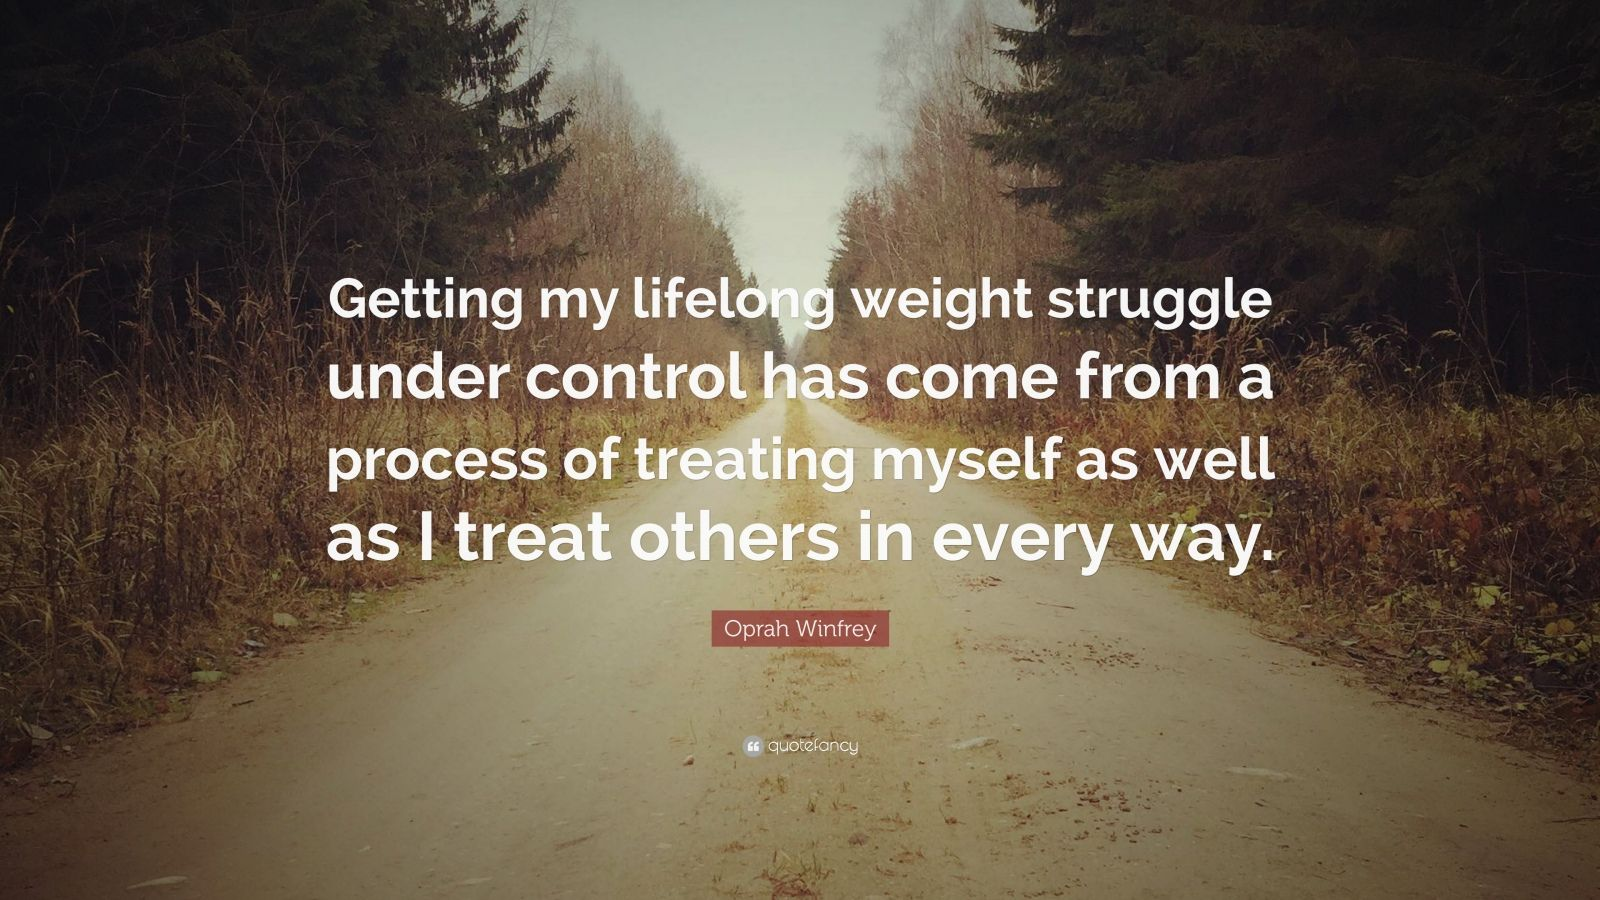 """Oprah Winfrey Quote: """"Getting my lifelong weight struggle under control has come from a process of treating myself as well as I treat others in every way."""""""